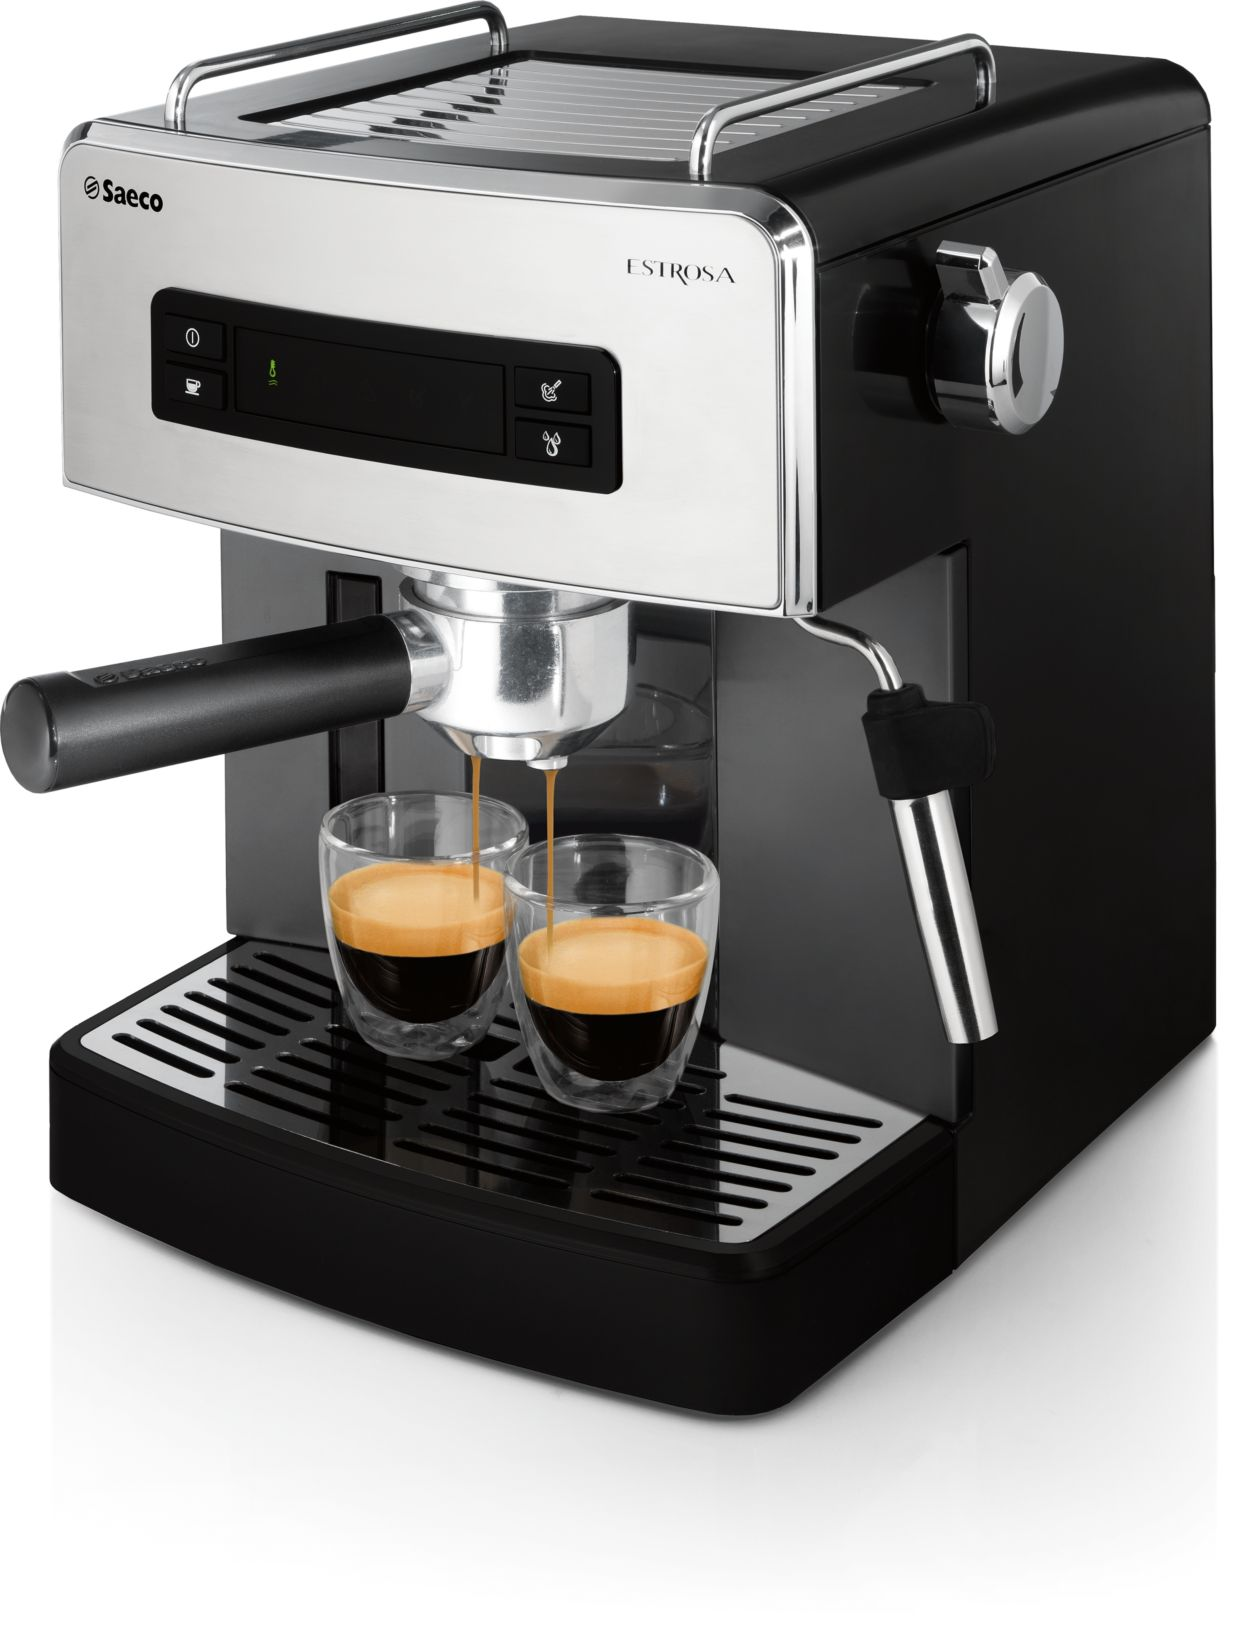 Senseo Coffee Maker Repair Manual : Estrosa Manual Espresso machine HD8525/01 Saeco